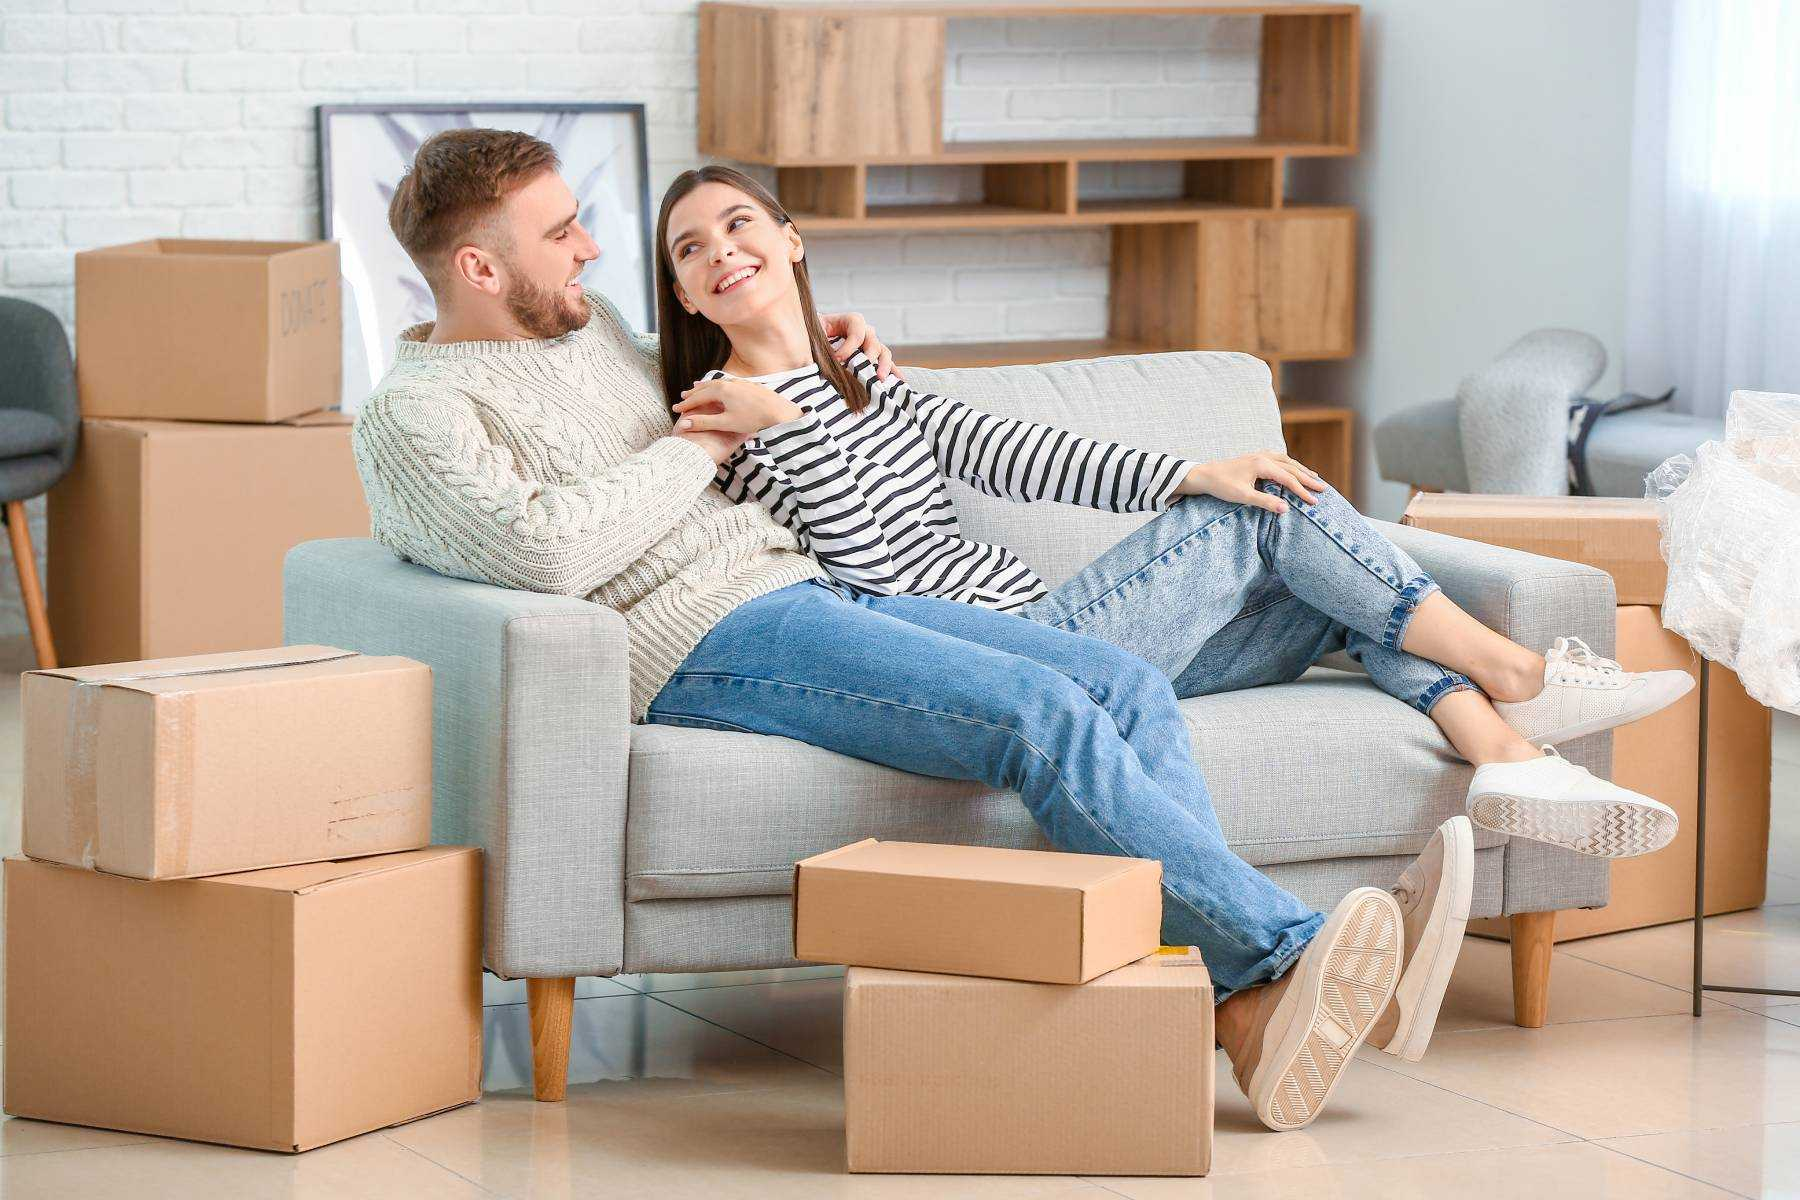 Moving In Together Checklist: 7 Things to Do Beforehand